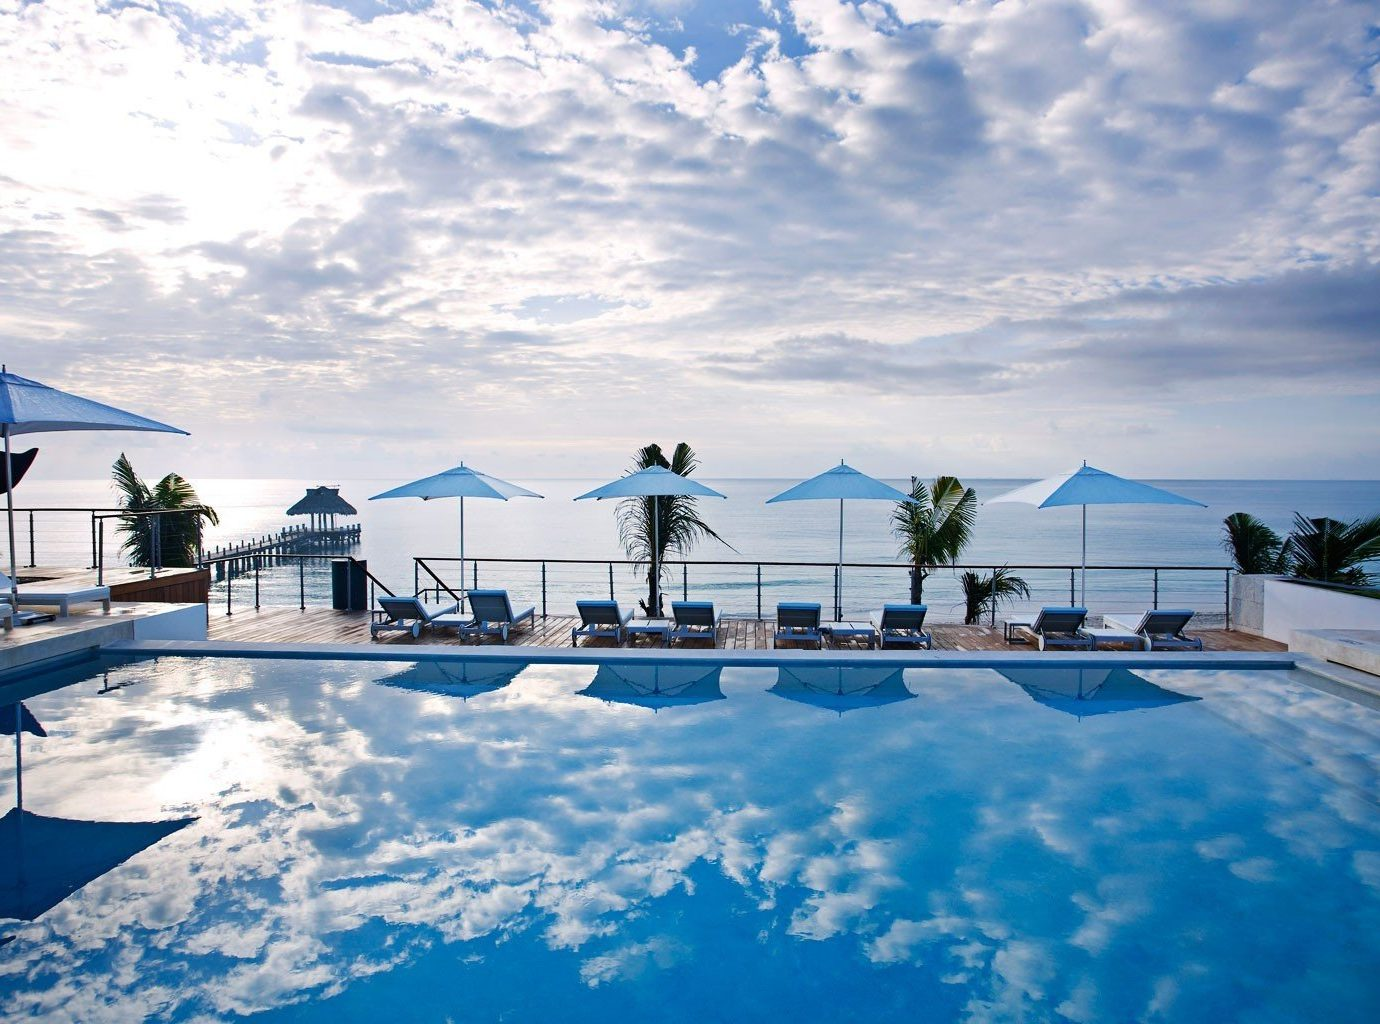 Hotels sky outdoor snow swimming pool blue Resort vacation estate Ocean Nature Sea home clouds cloudy day